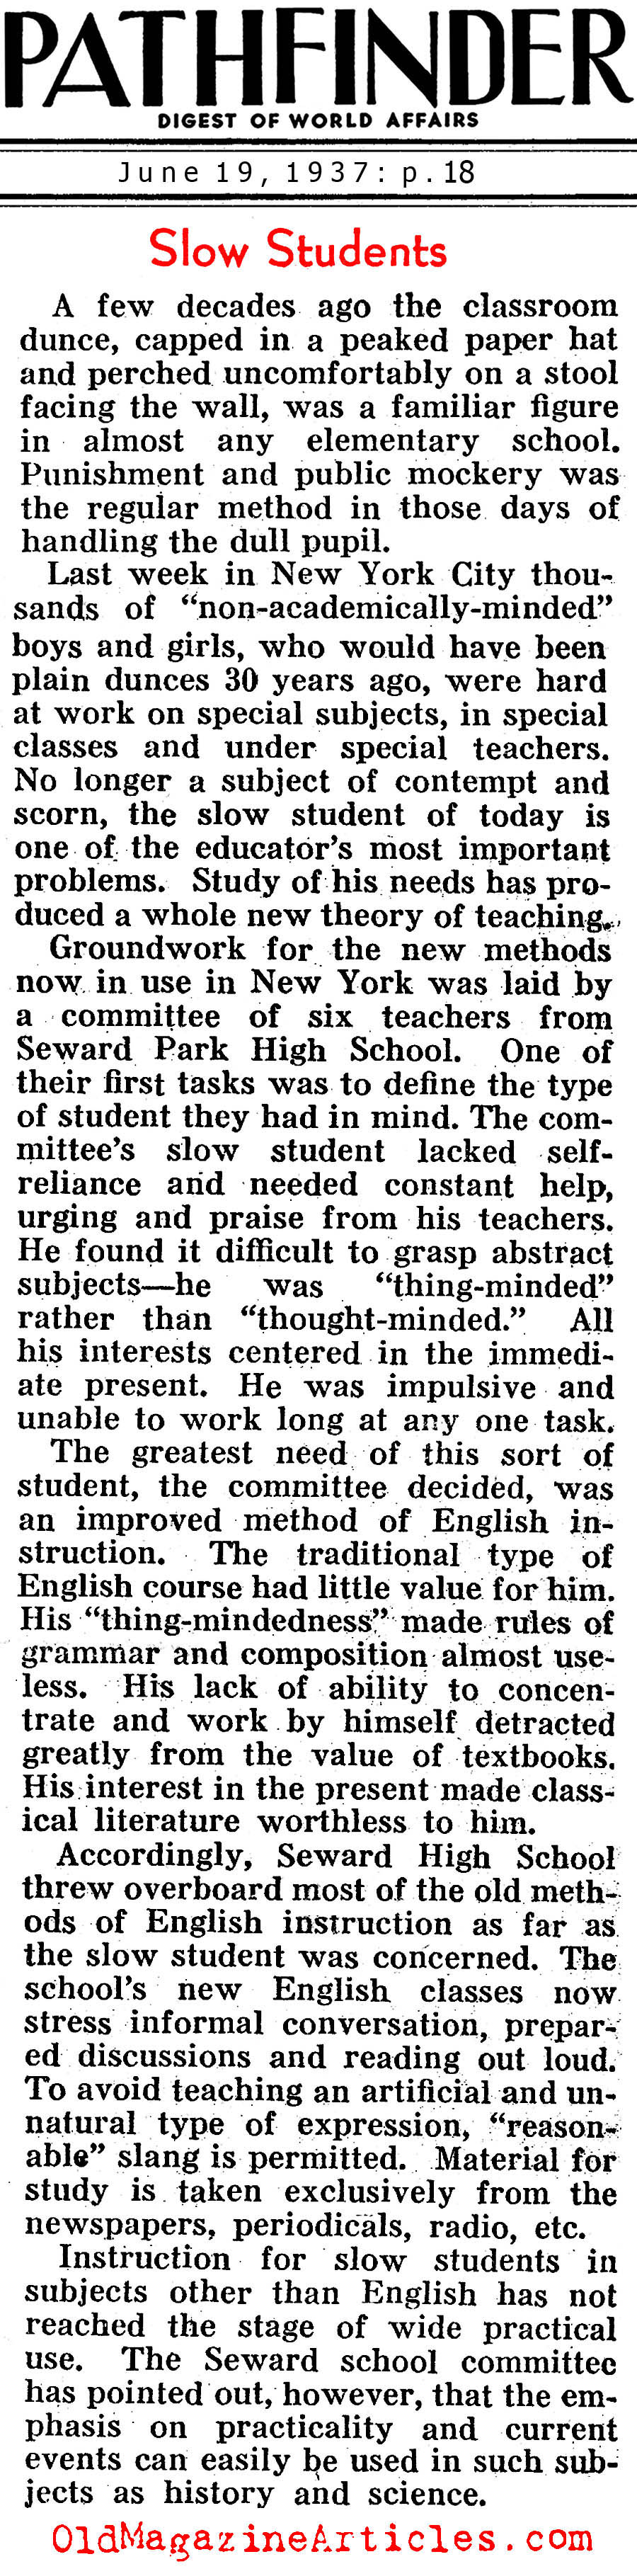 Trying to Understand Learning Disabilities (Pathfinder Magazine, 1937)